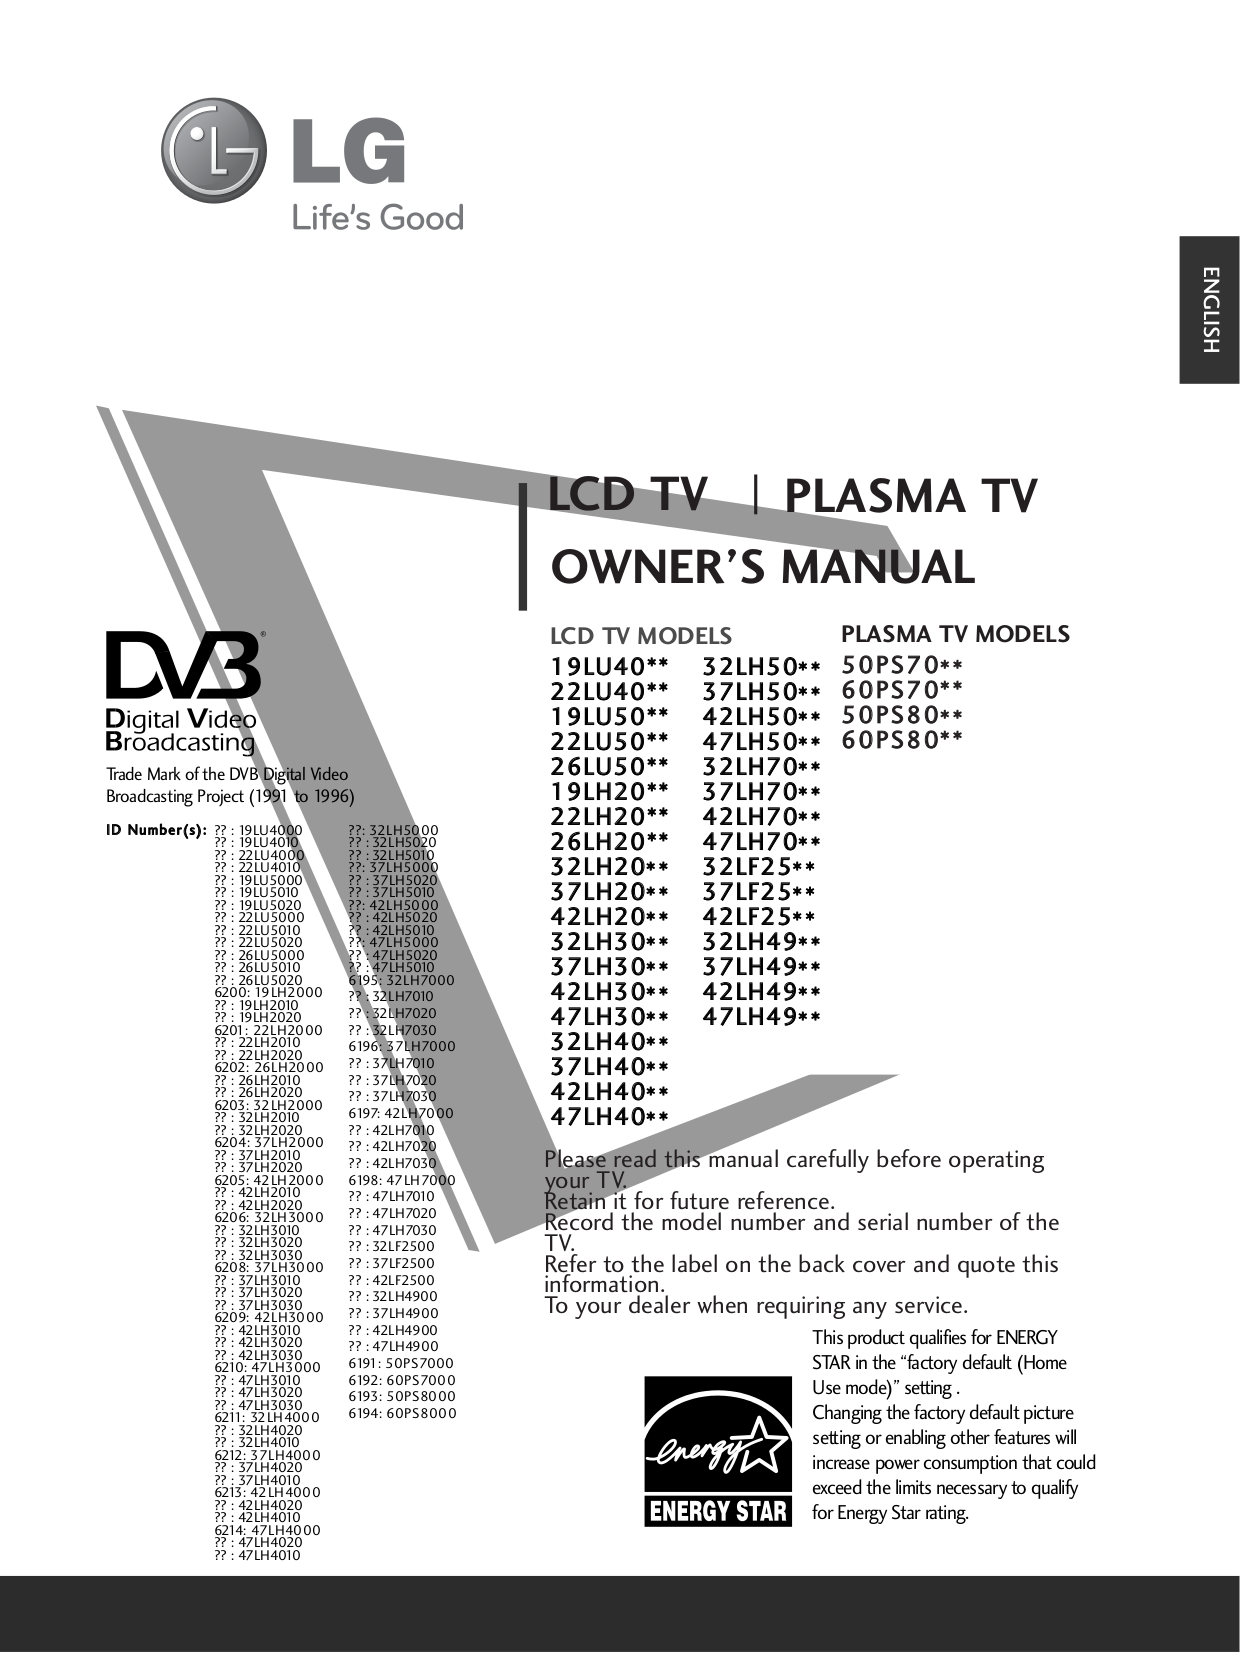 pdf for LG TV 42LH50 manual